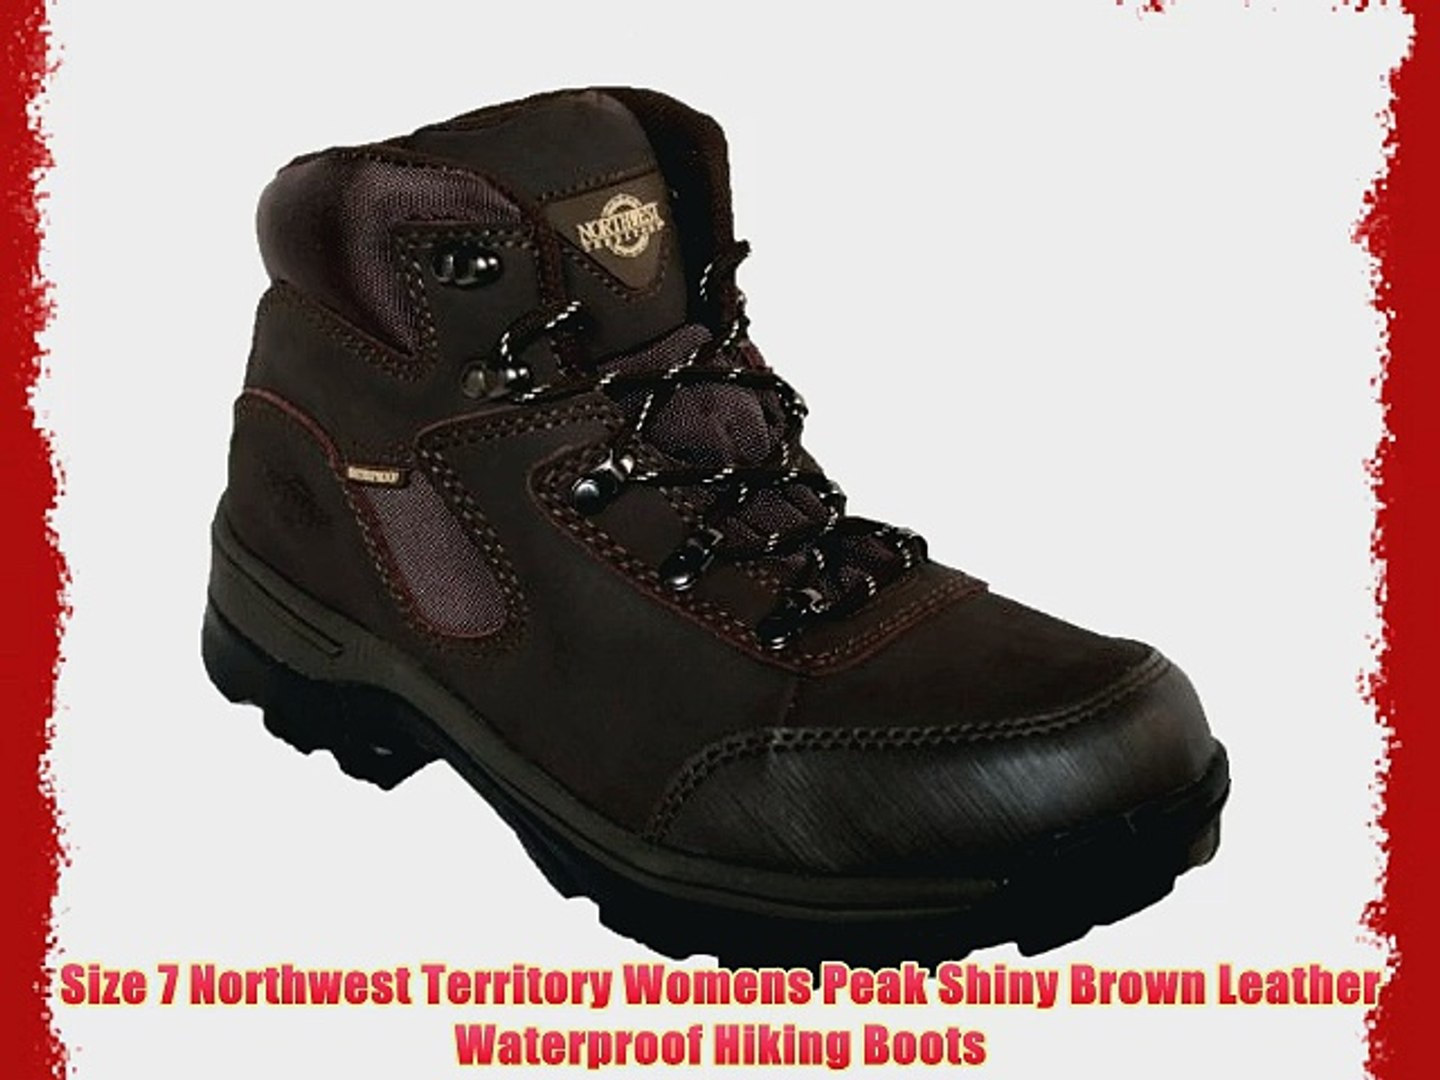 77a6873bcc0 Size 7 Northwest Territory Womens Peak Shiny Brown Leather Waterproof  Hiking Boots - video dailymotion